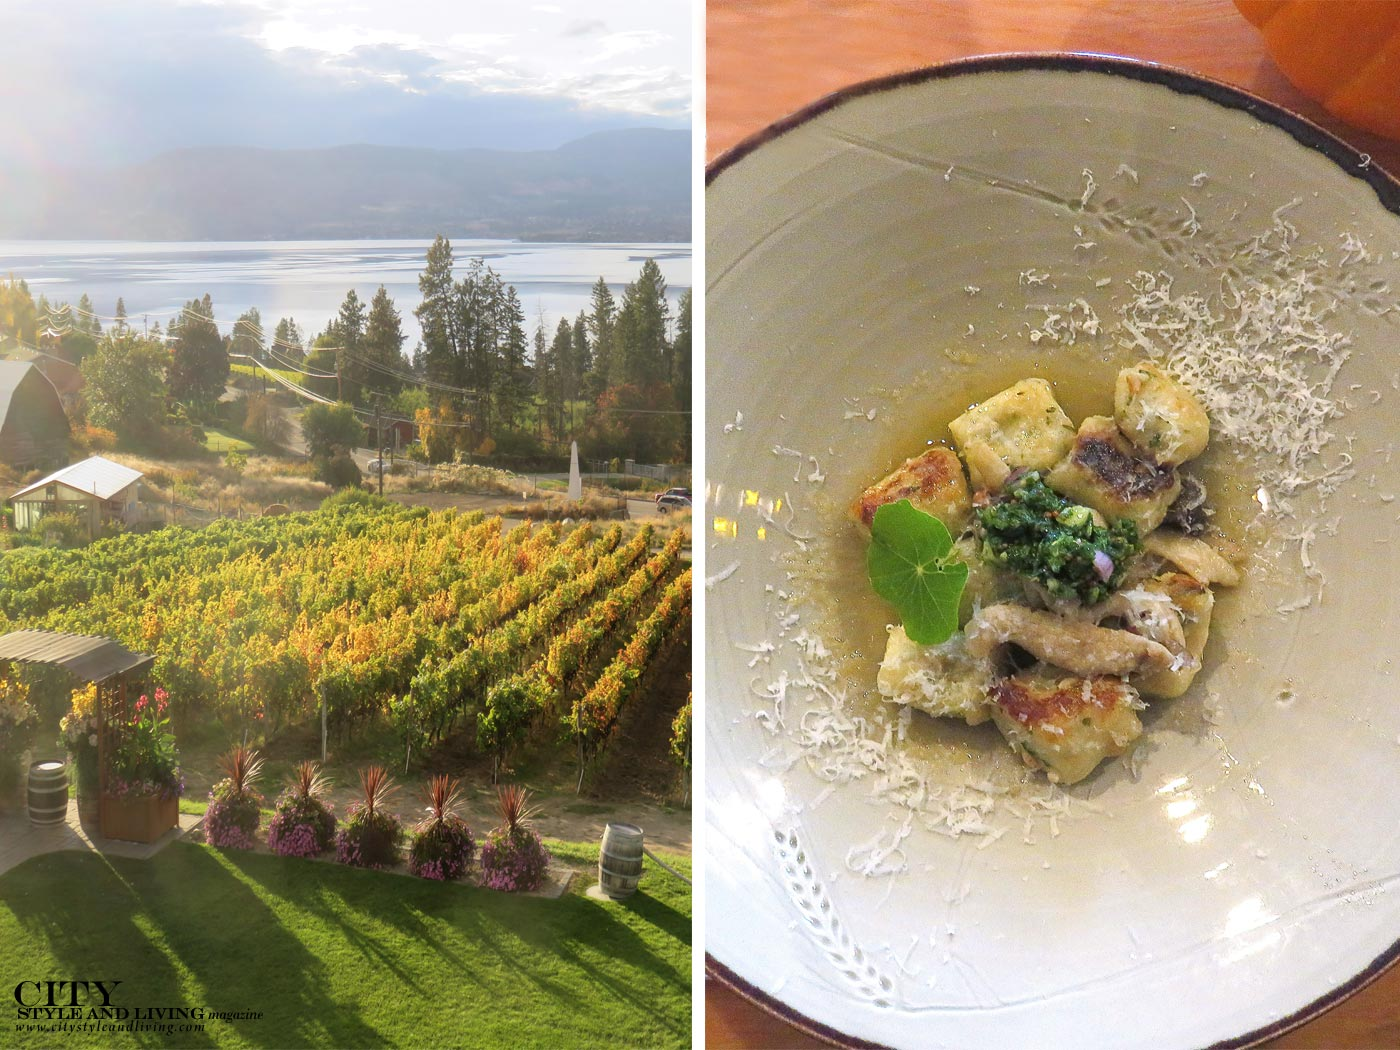 Summerhill Pyramid Winery gnocchi and sunset at the vineyard in City Style and Living Magazine.